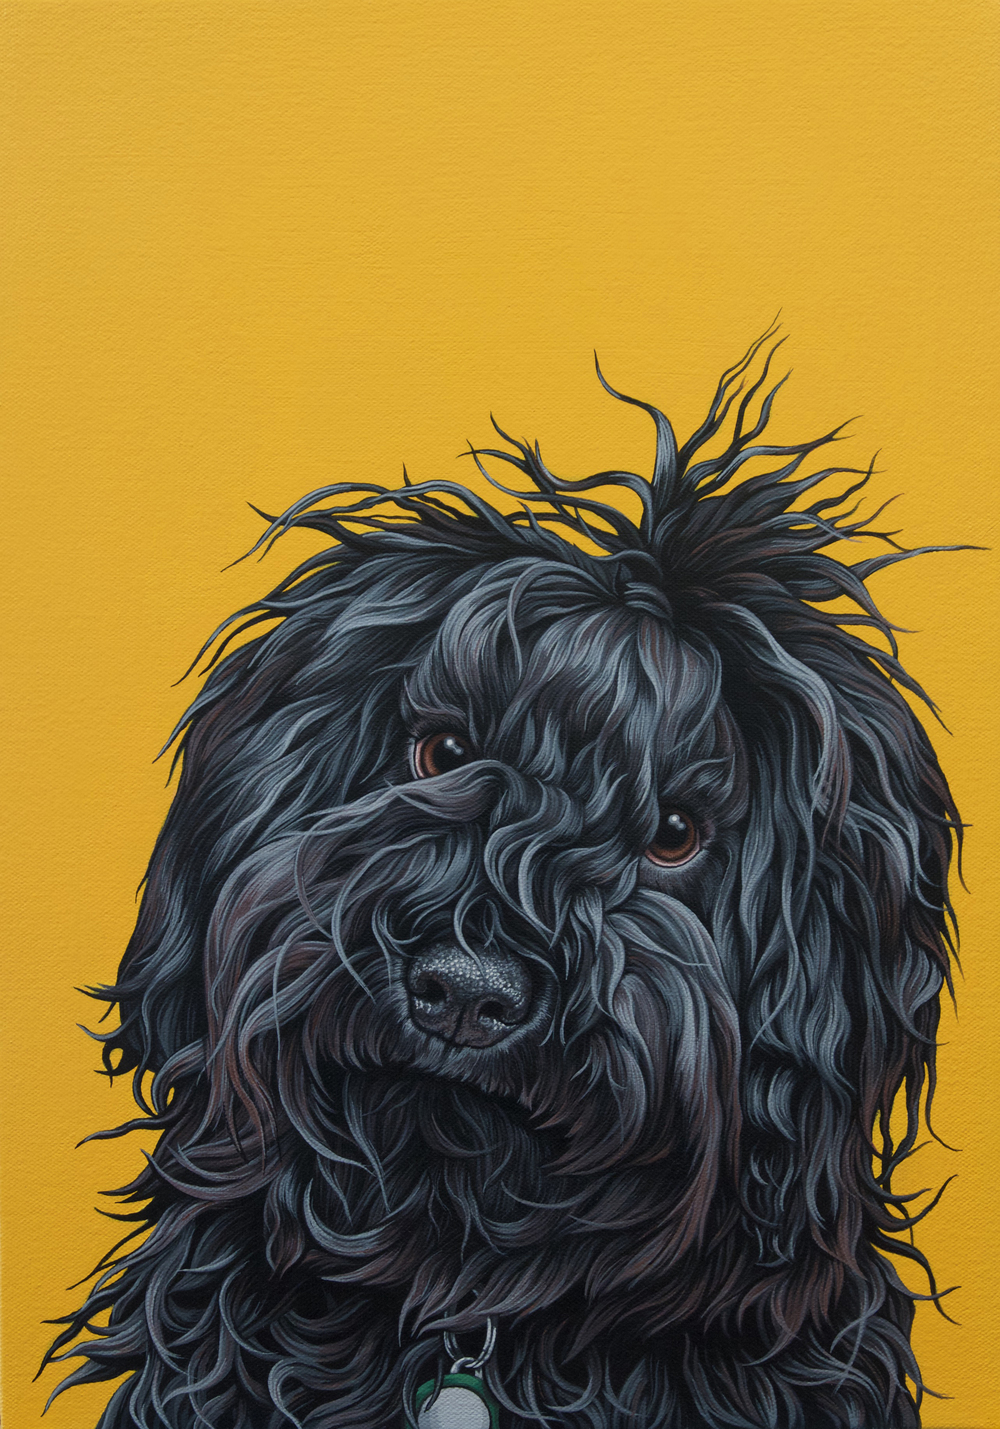 """Cordy"", latex enamel on canvas, 12"" x 16"", 2016"